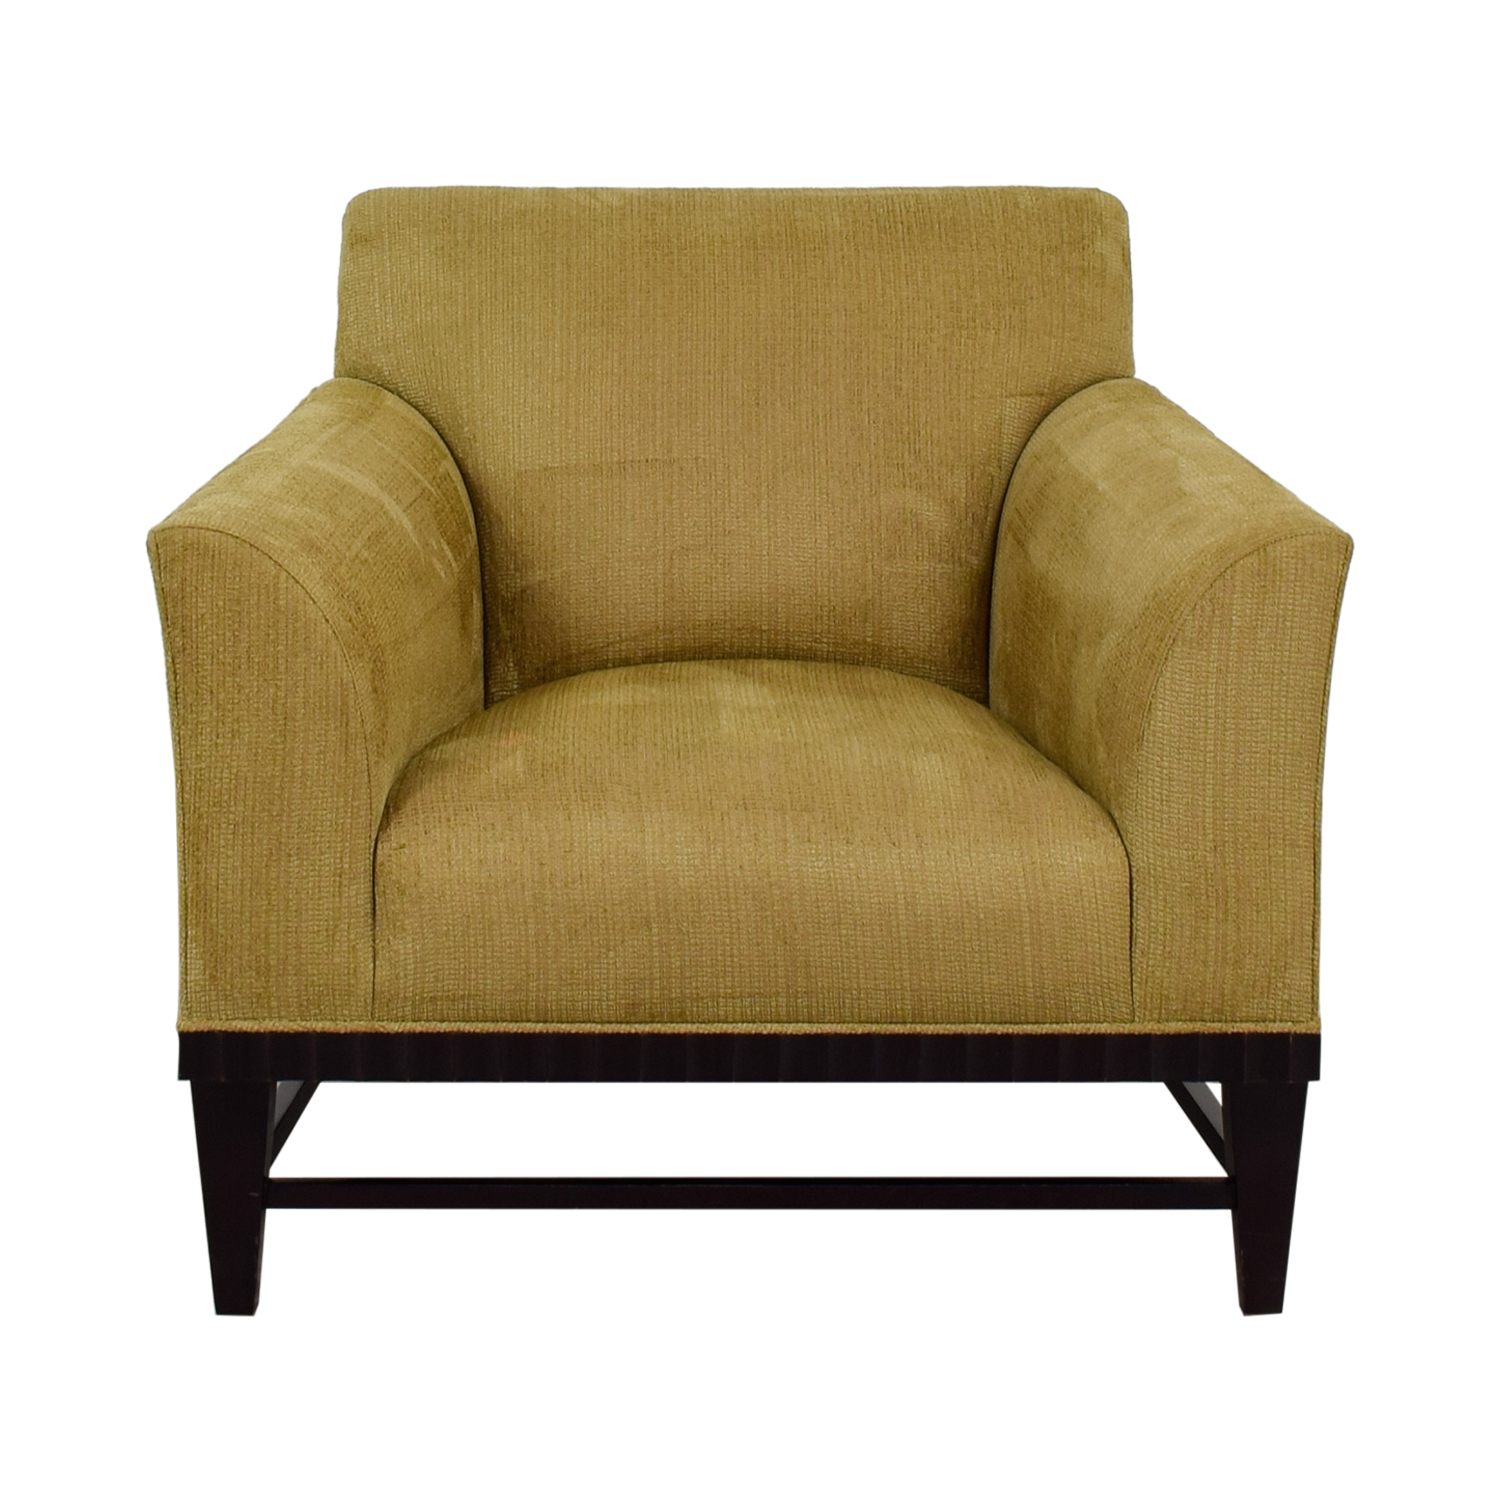 shop Barbara Barry for Baker Beige Arm Chair Barbara Barry Chairs